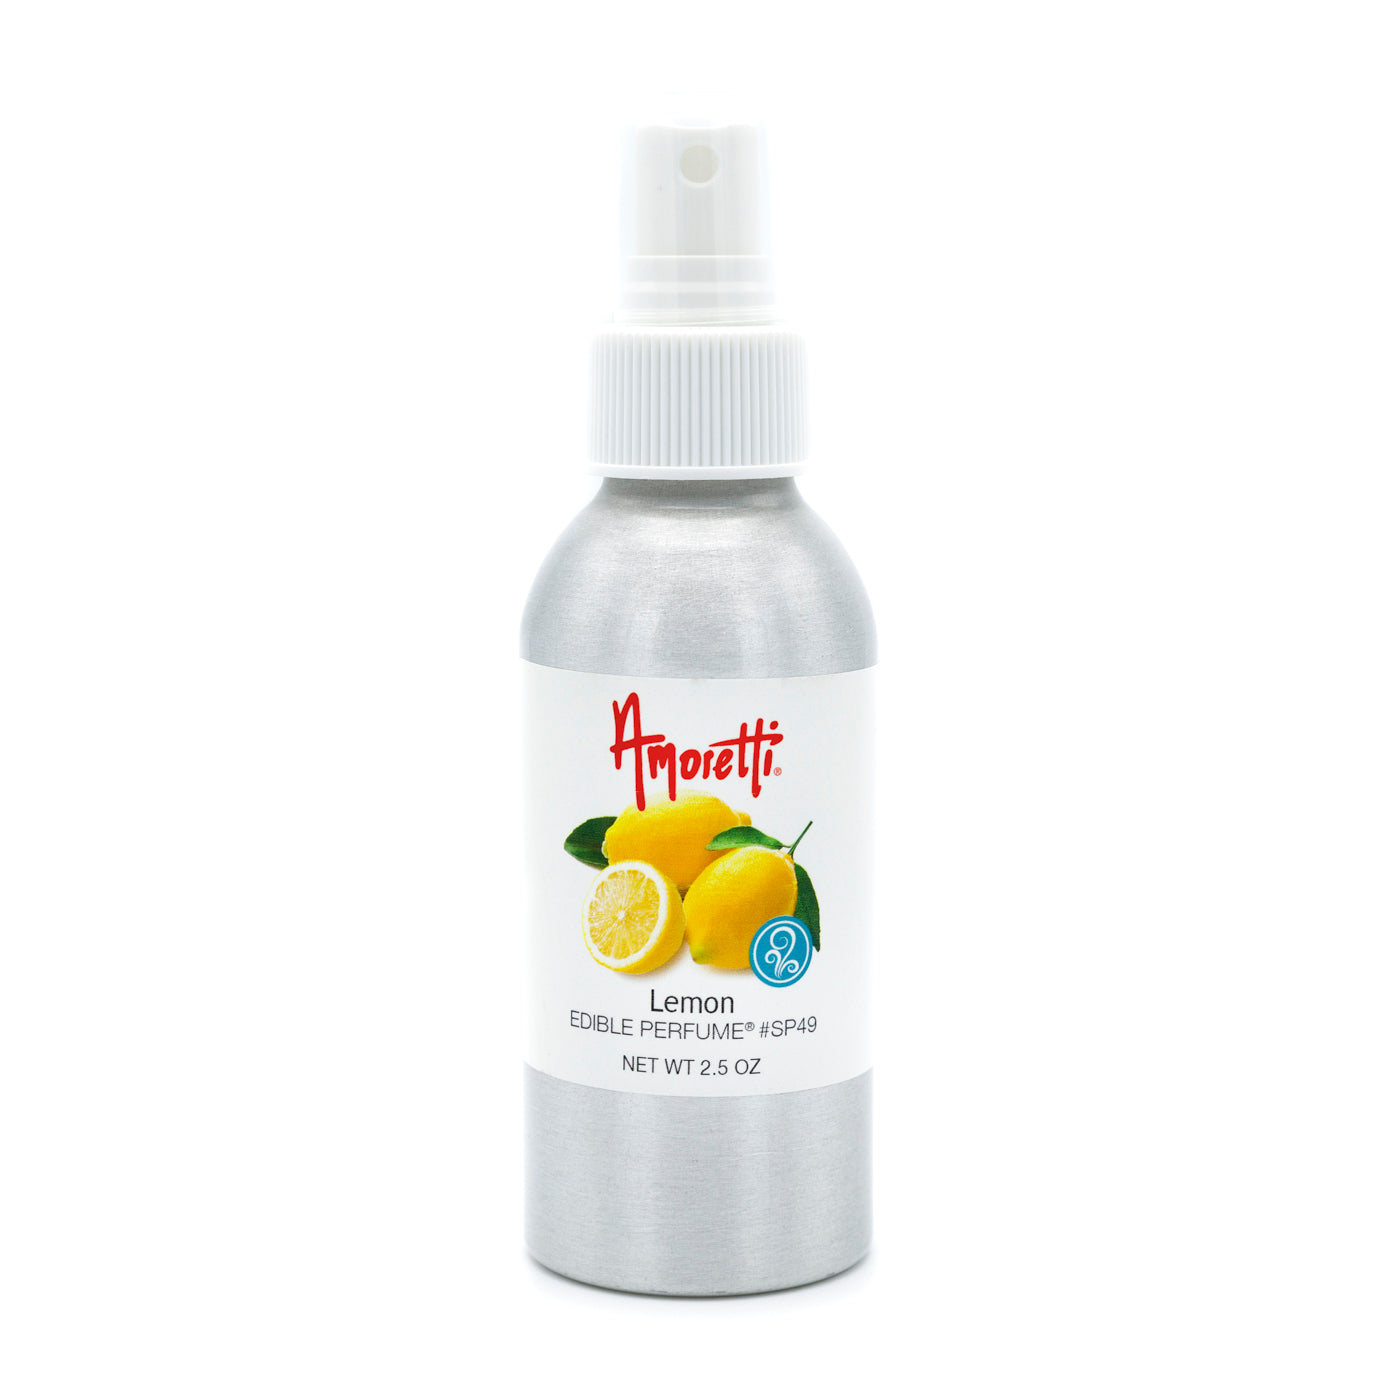 Lemon Edible Perfume Spray